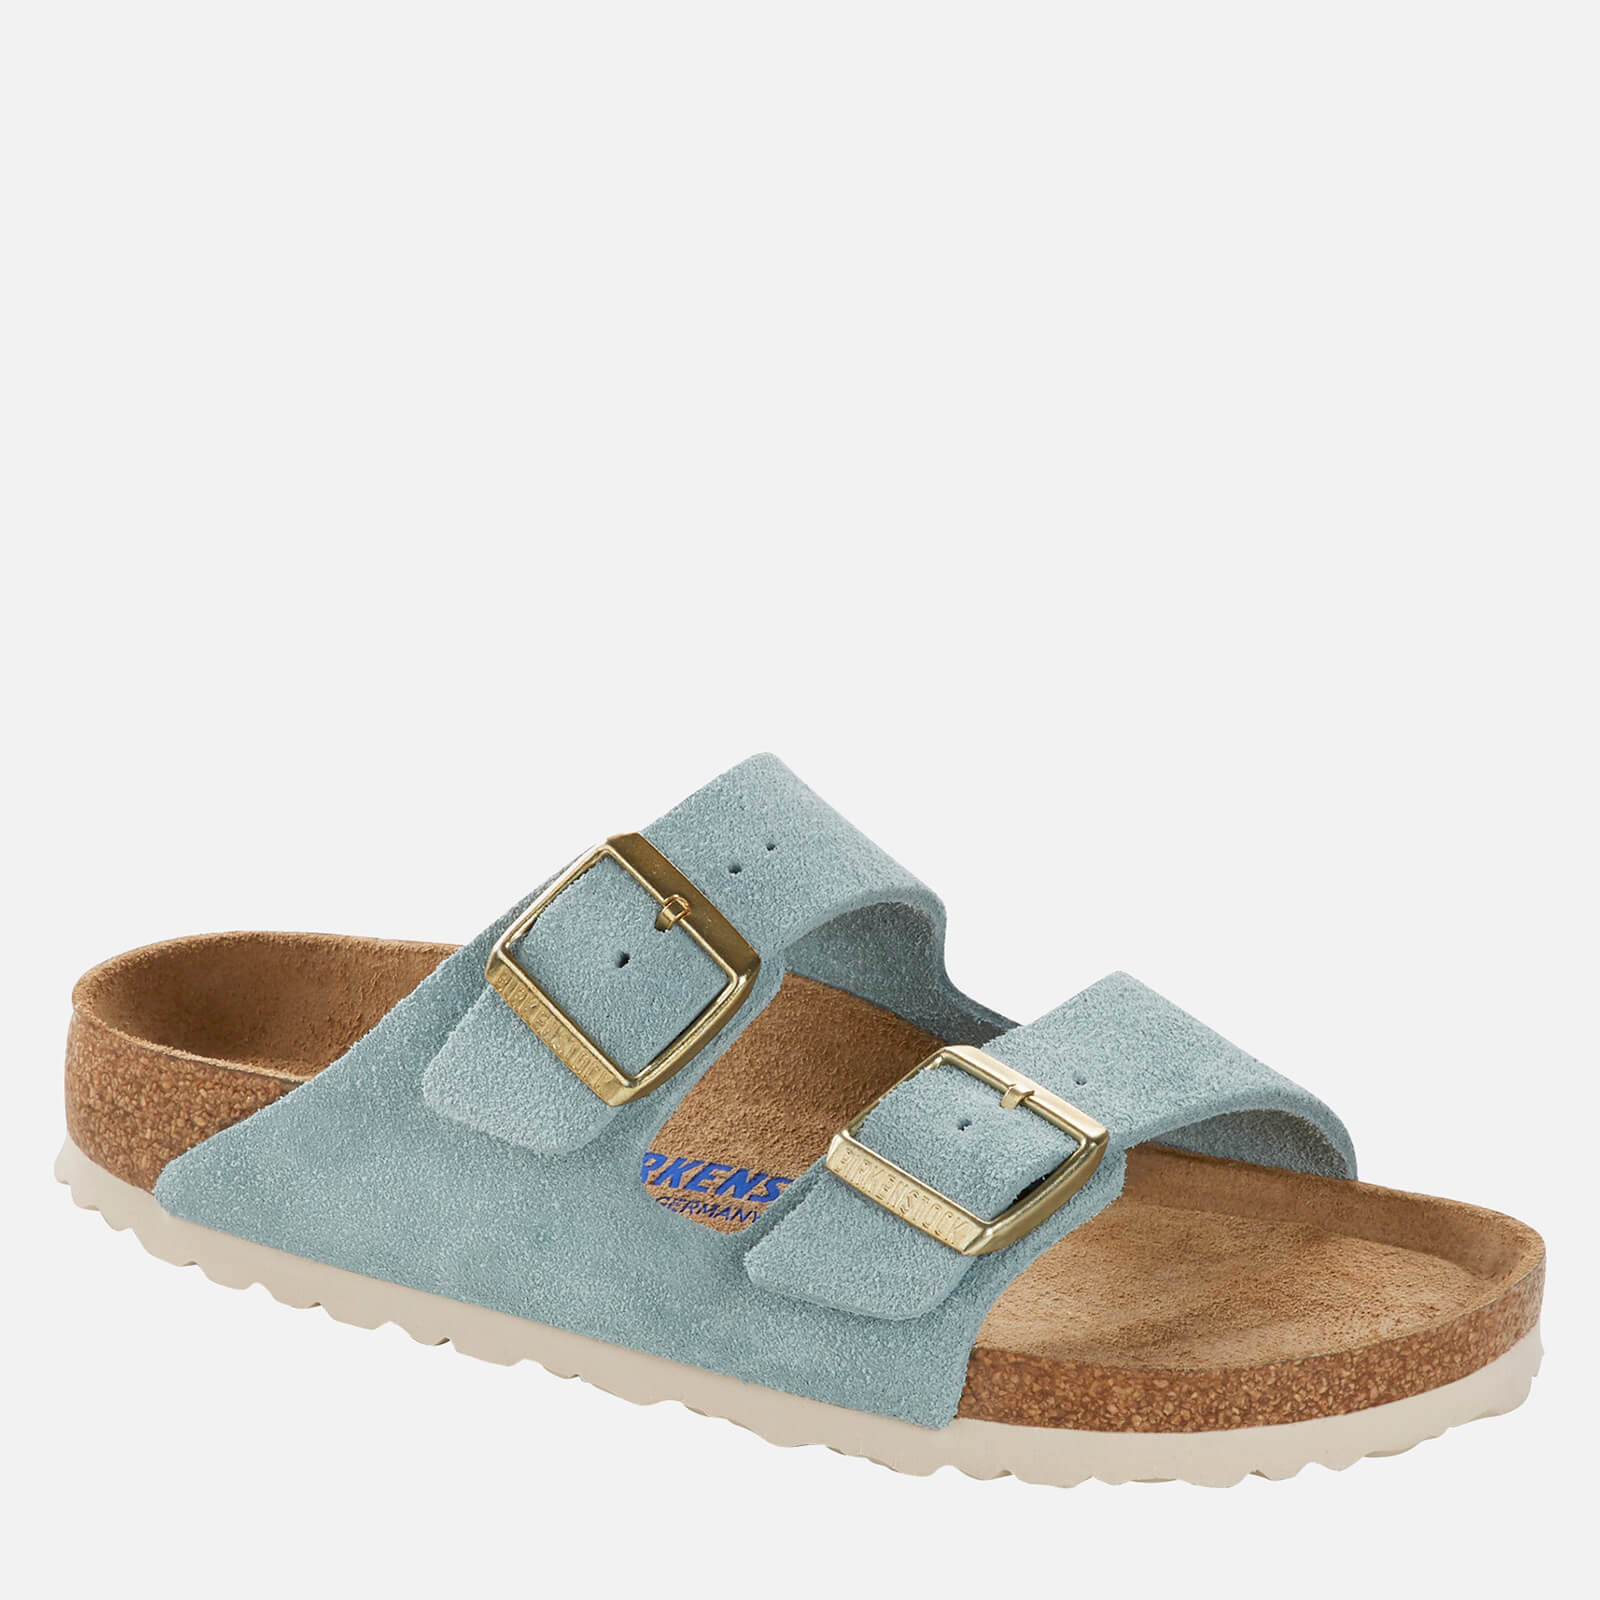 Birkenstock Womens Arizona Sfb Suede Double Strap Sandals Light Blue Eu 39 Uk 55